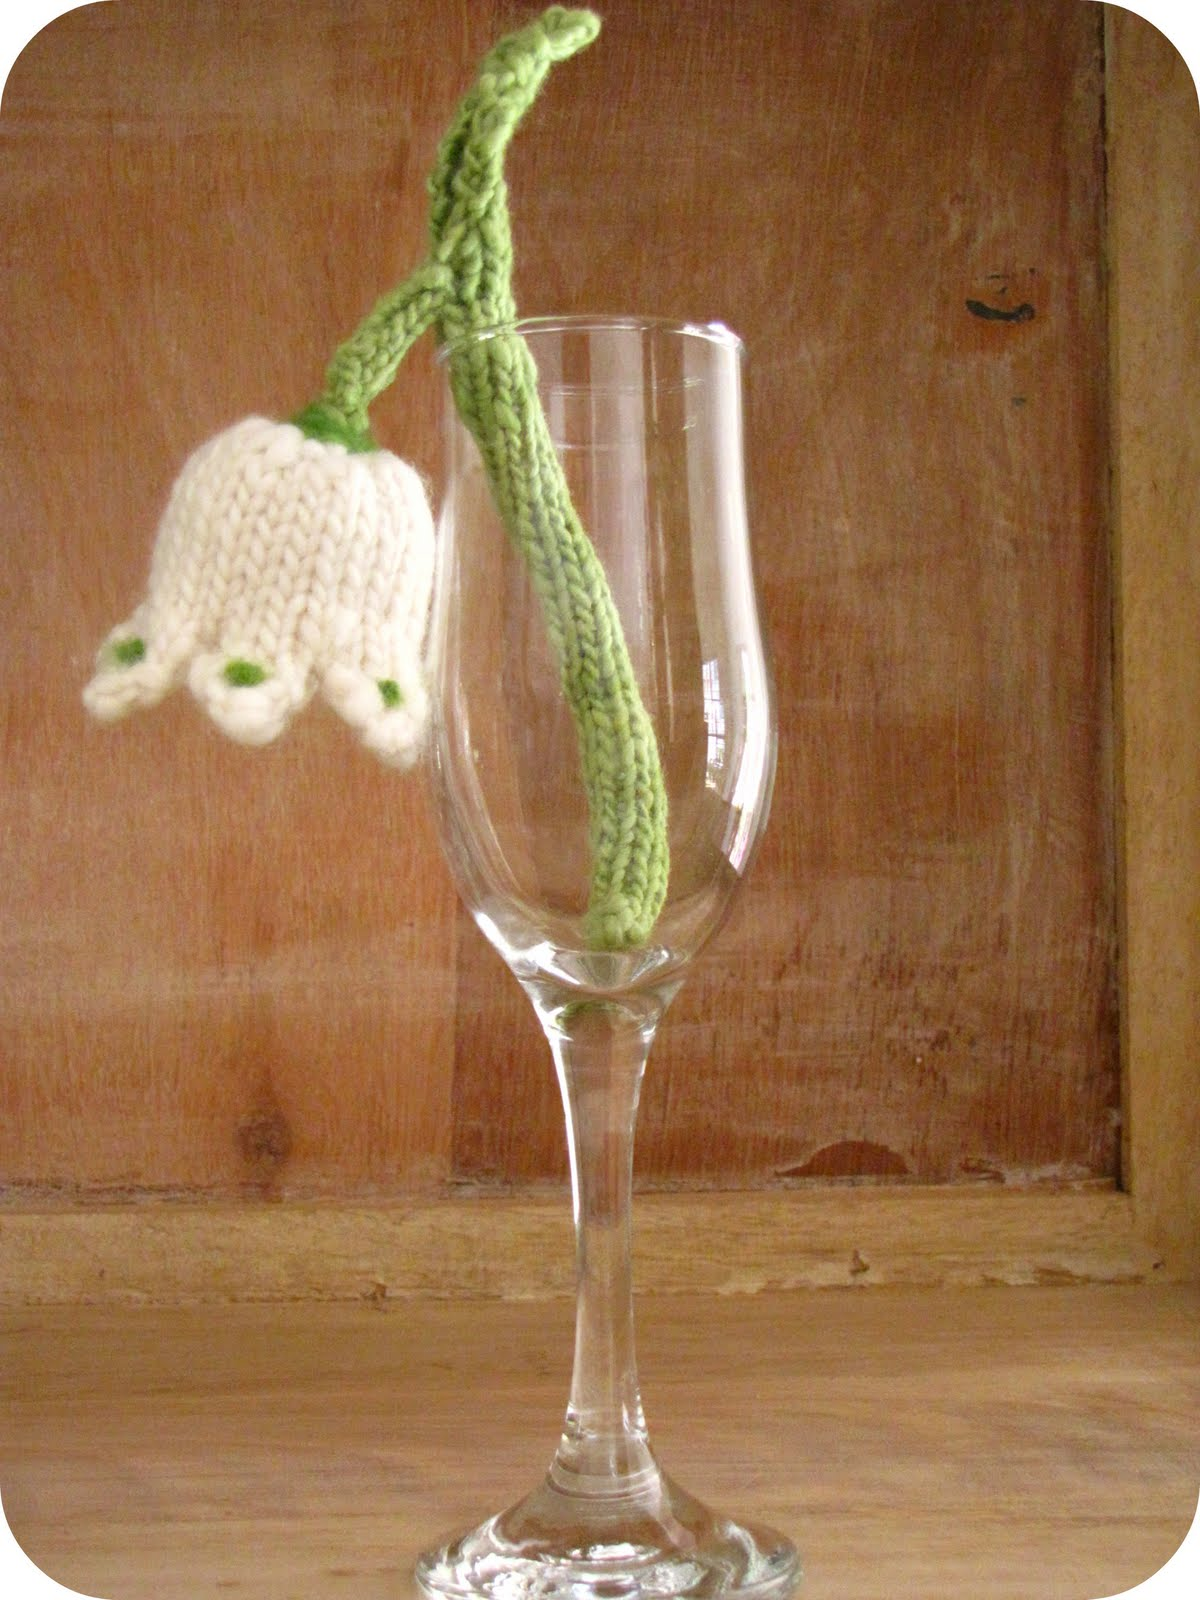 Knitted Snowdrop Inspired Flower Tutorial - Natural Suburbia